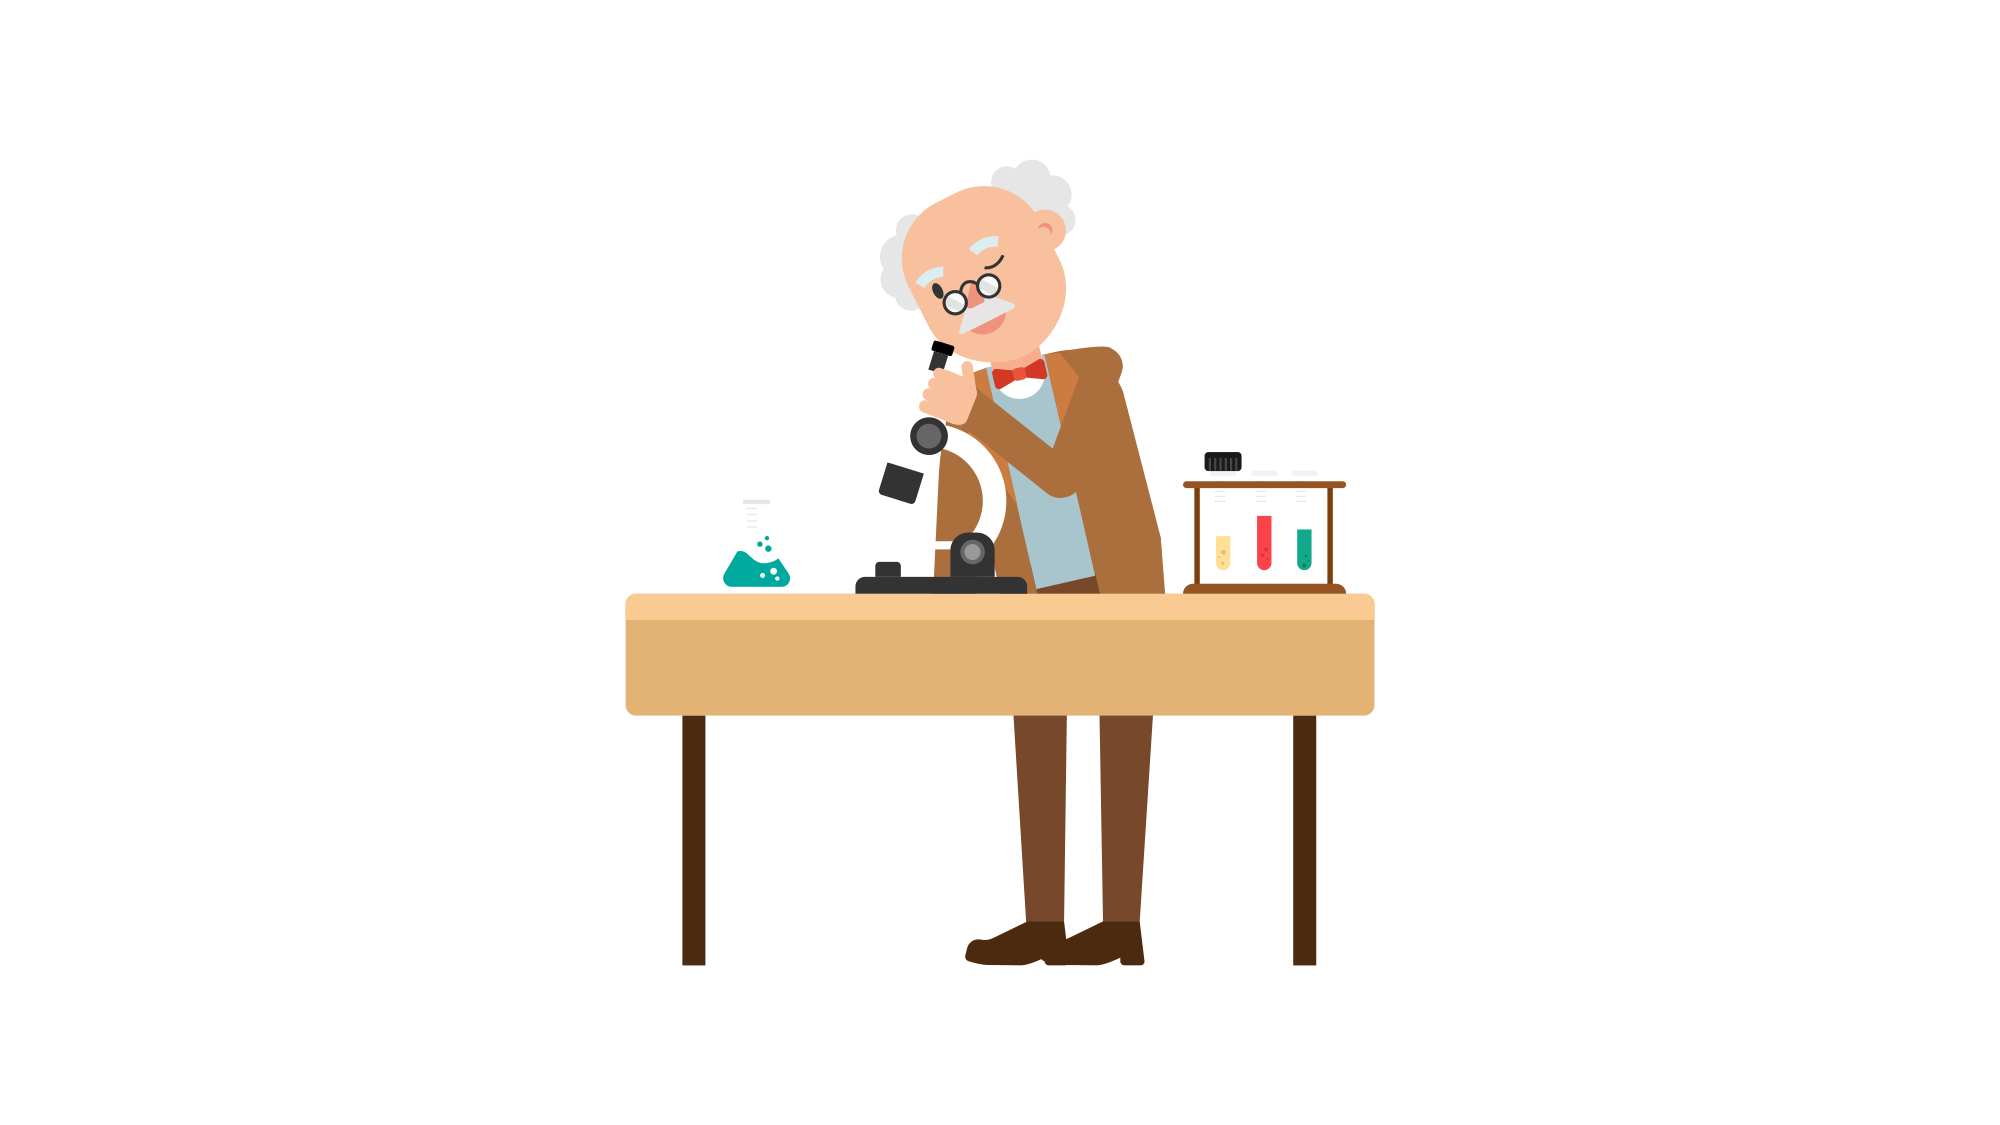 Log clipart history professor. File looking through microscope